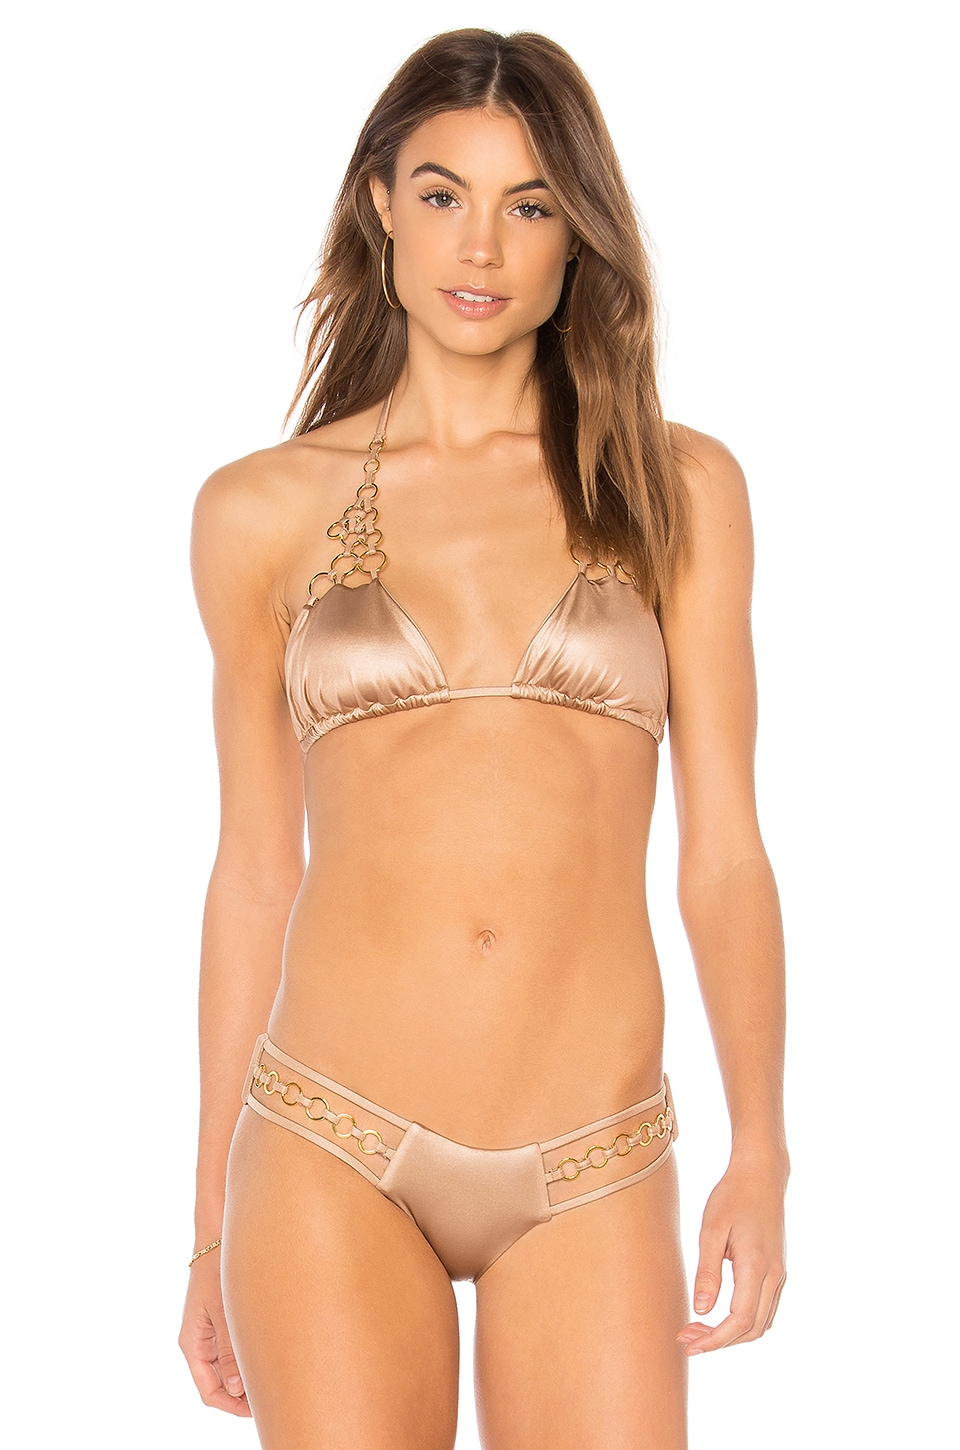 BEACH BUNNY Ireland Bikini Top in Metallic Neutral